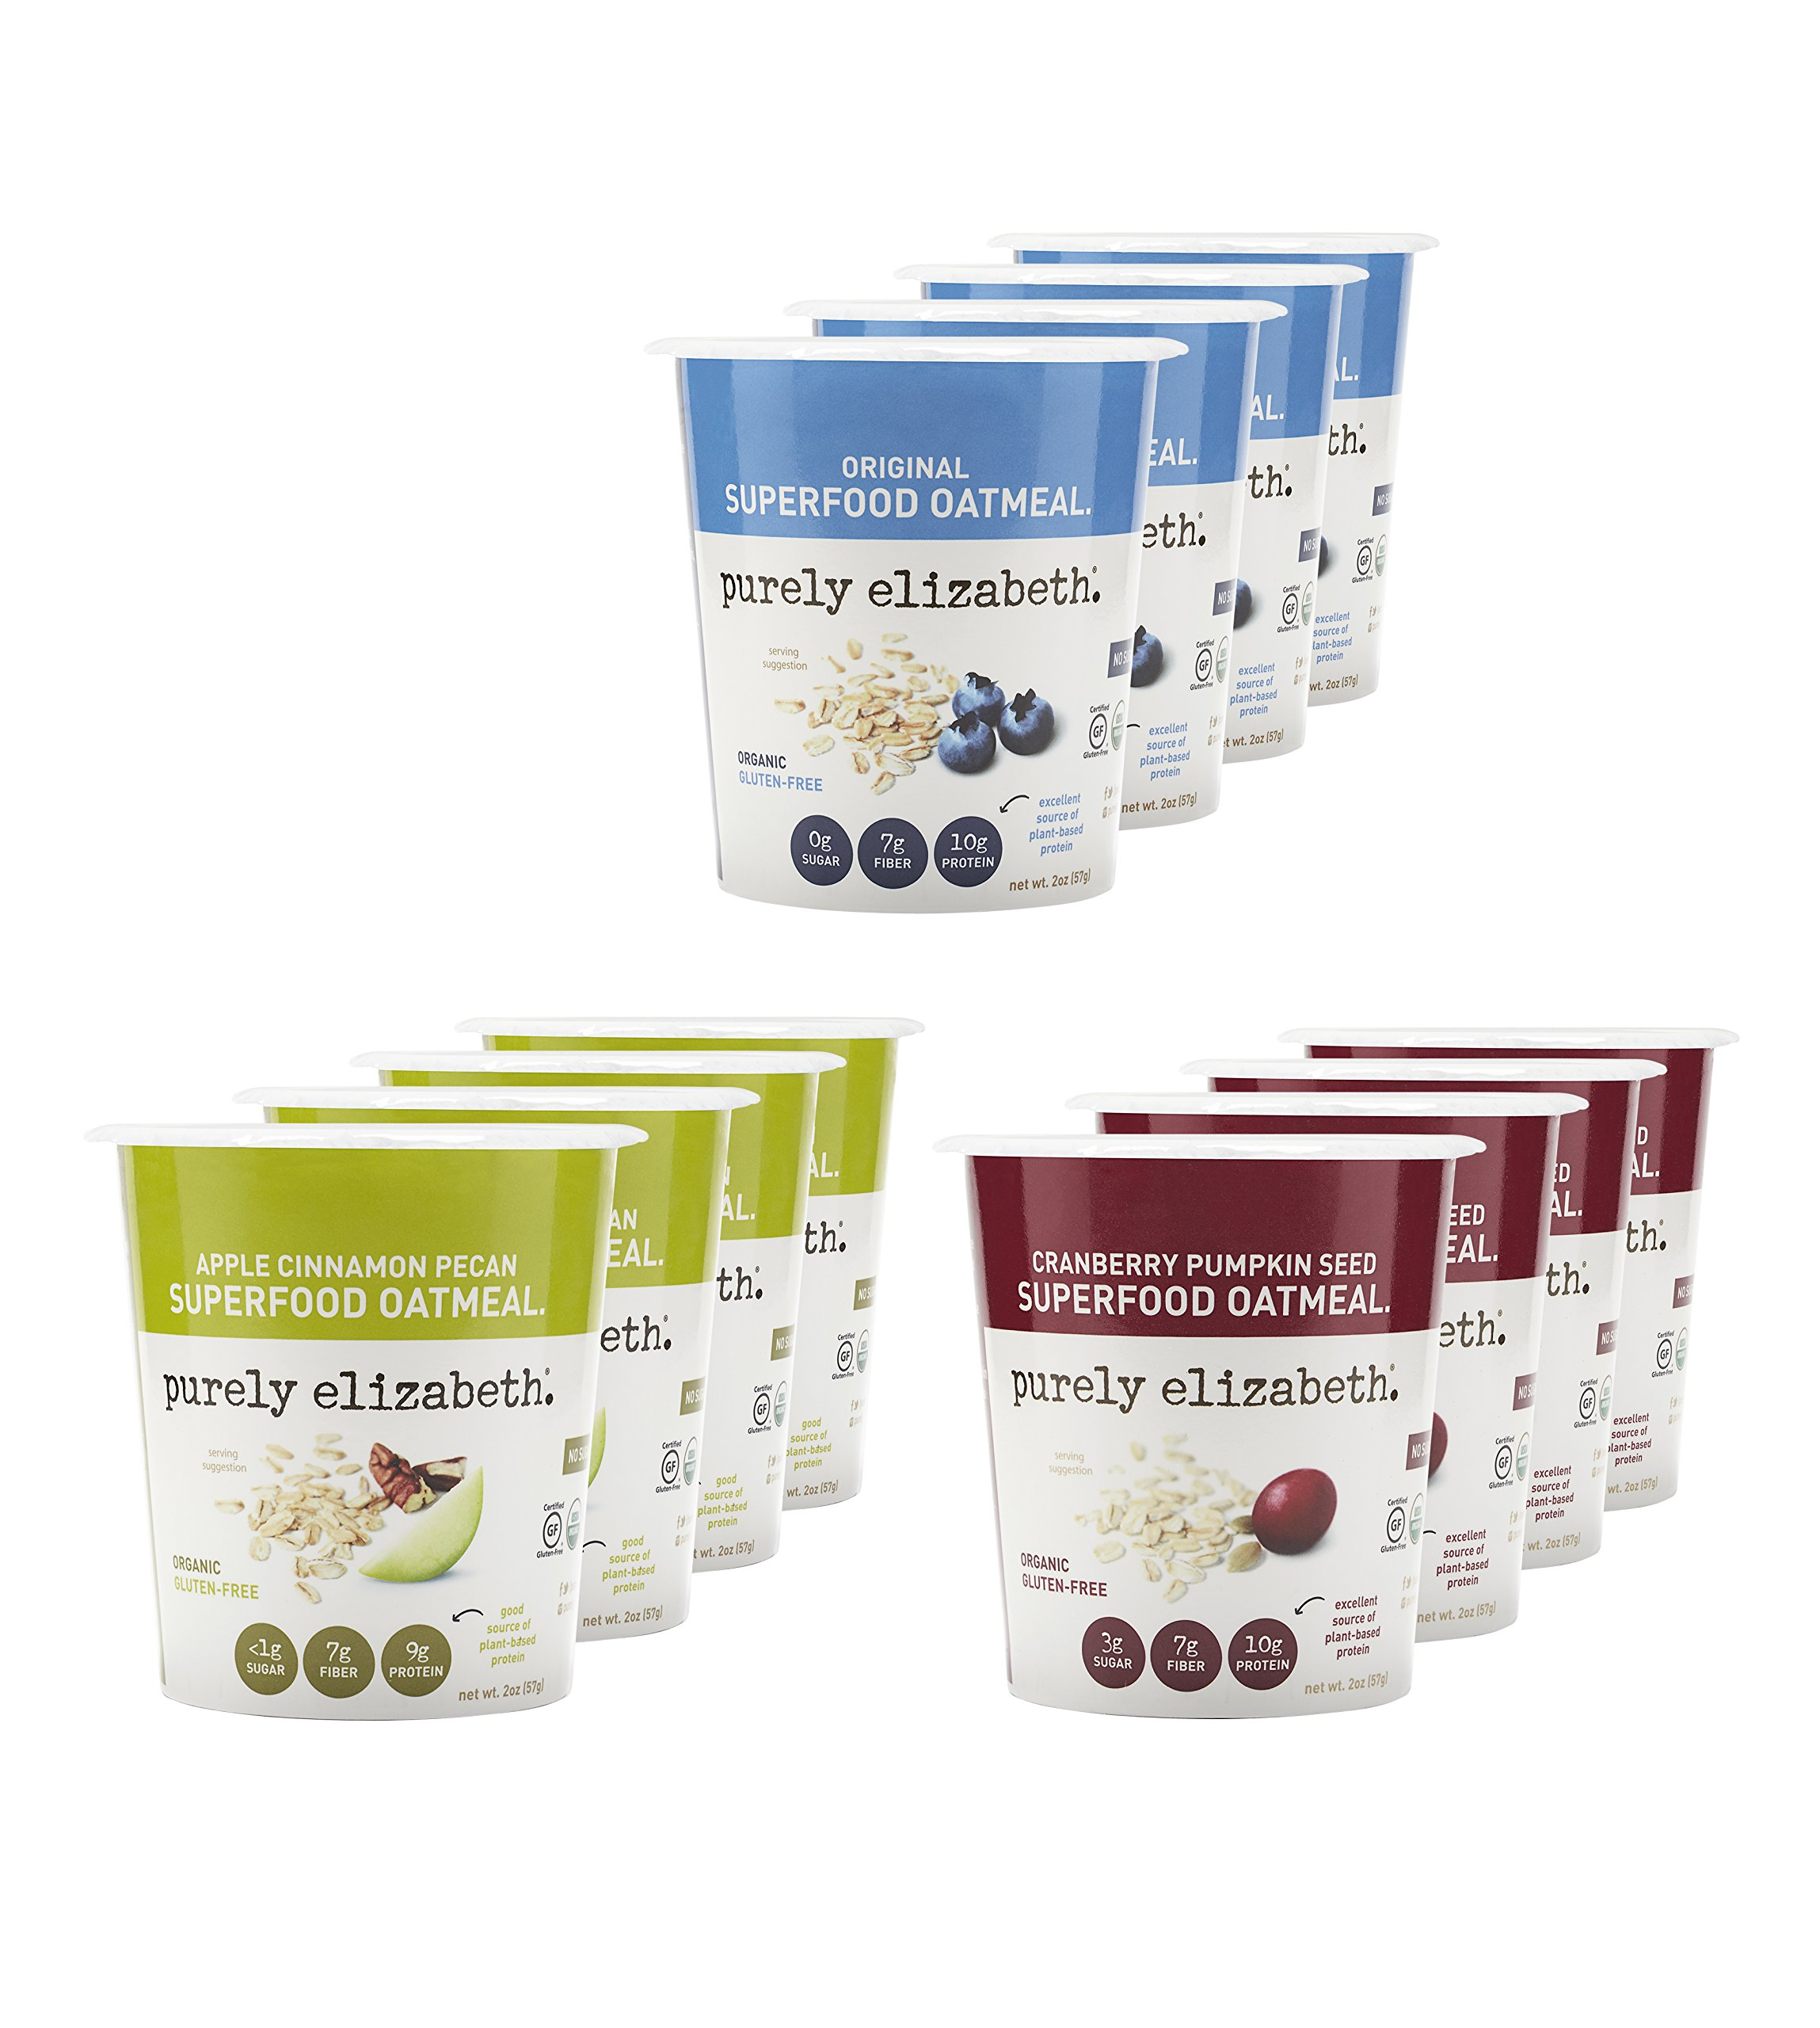 purely elizabeth Gluten-Free, Organic, Superfood Oatmeal Cup, Variety Pack, 12 Count